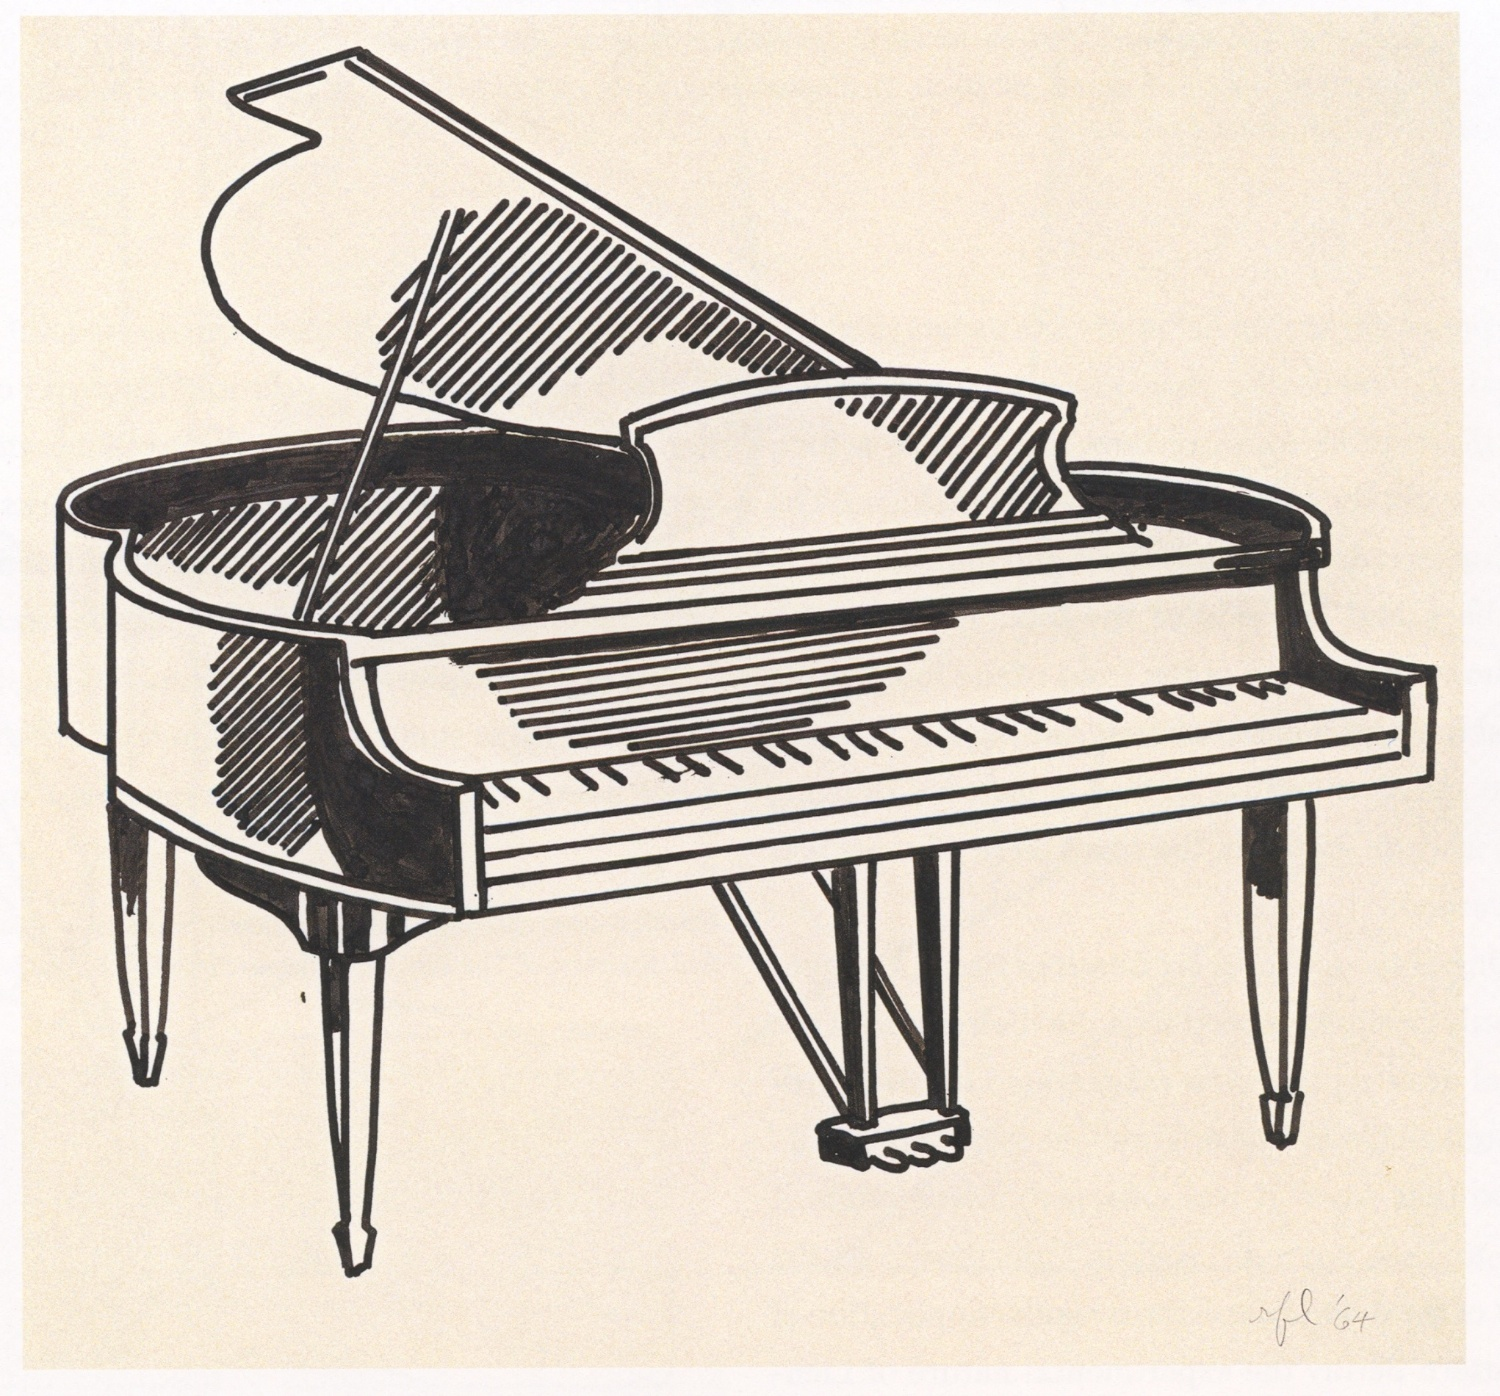 Epph Lichtenstein S Piano C 1961 Draw this cute piano by following this drawing lesson. epph lichtenstein s piano c 1961